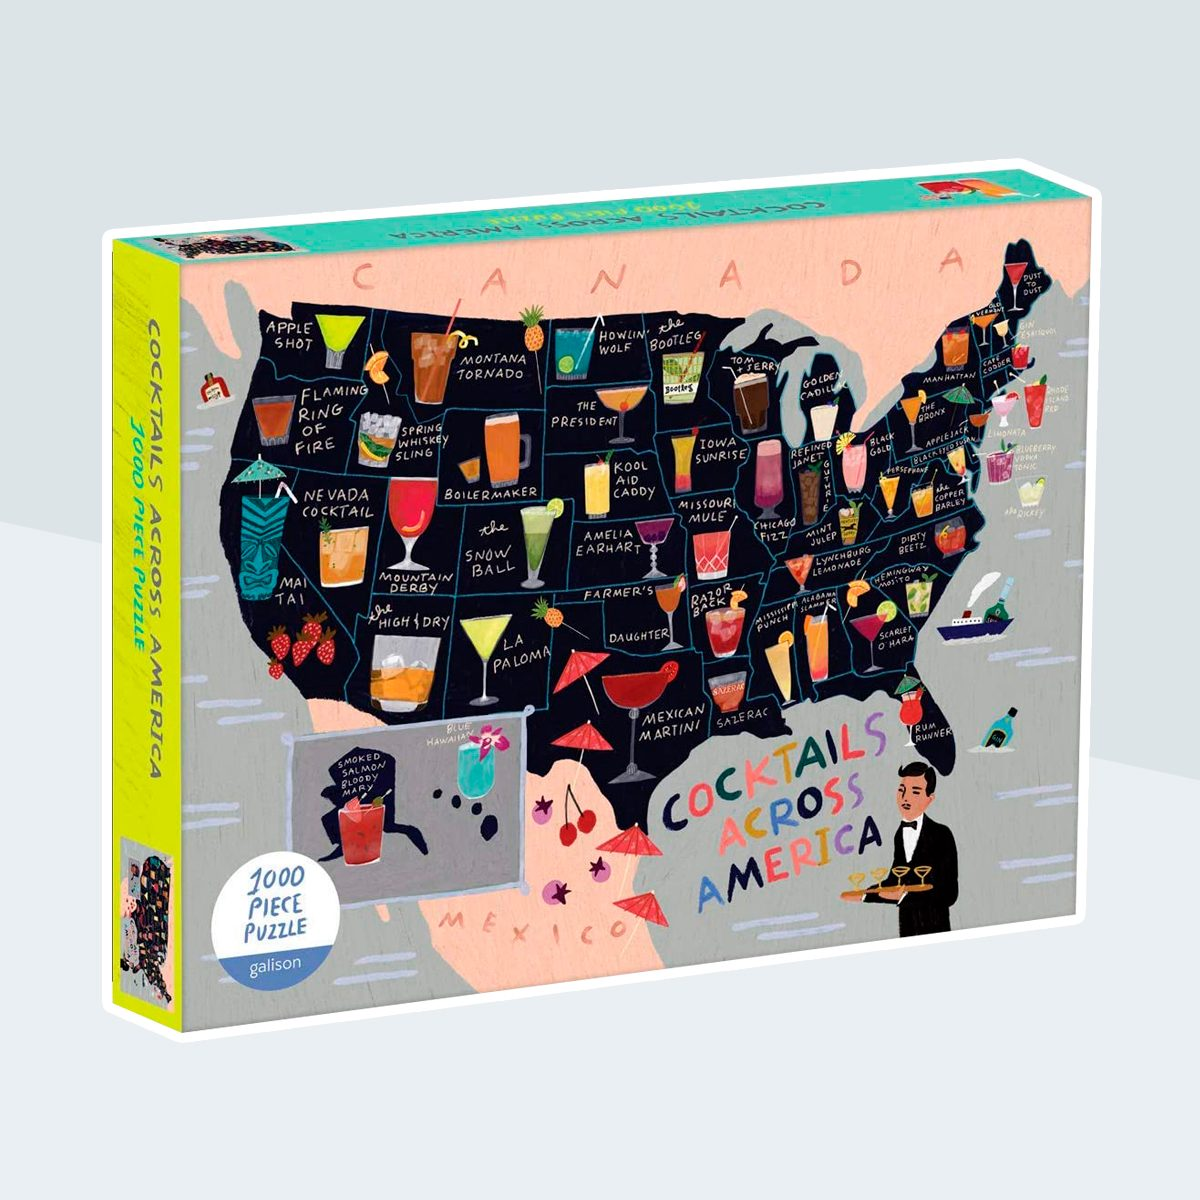 Galison Anne Bentley Jigsaw Puzzle, Cocktail Map of The USA, 1000+ Pieces – Vibrant Illustration of a US Map with Various Cocktail Listed for Each State, Thick, Sturdy Pieces, Perfect for Family Fun